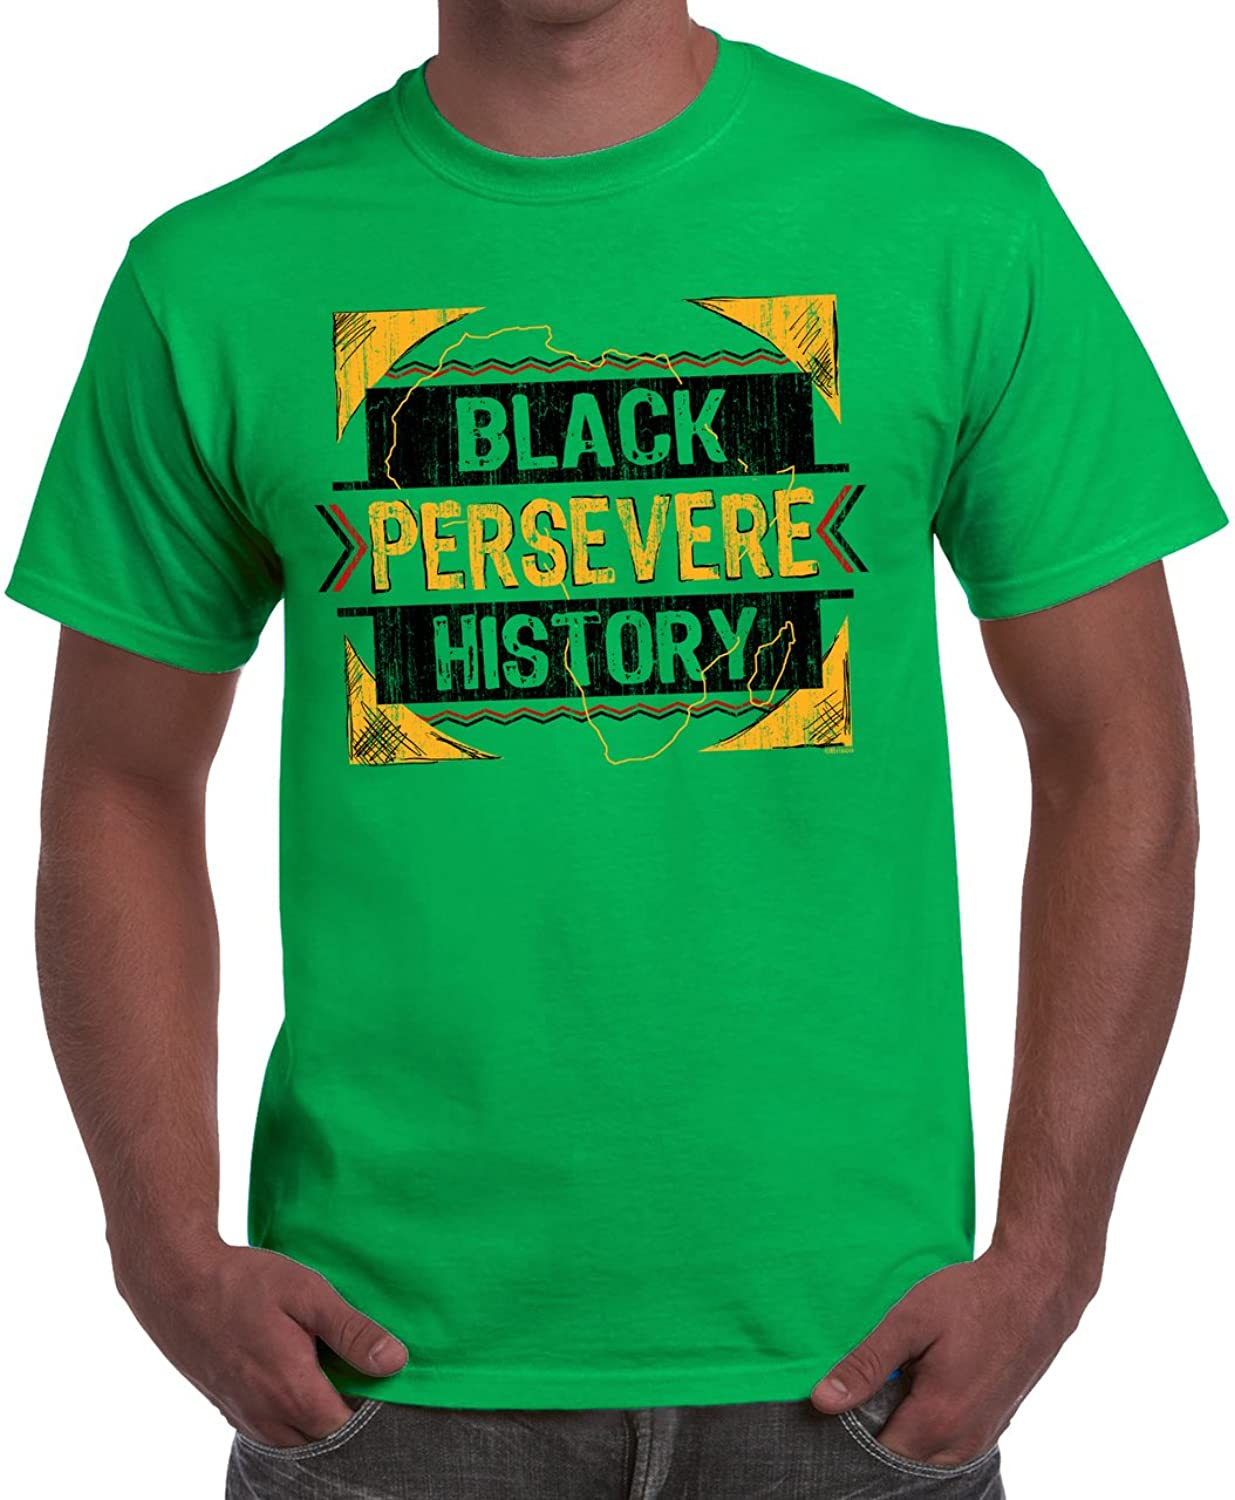 Persevere Black History Month BHM Shirt MLK Novelty Gift Ideas T-Shirt Tee